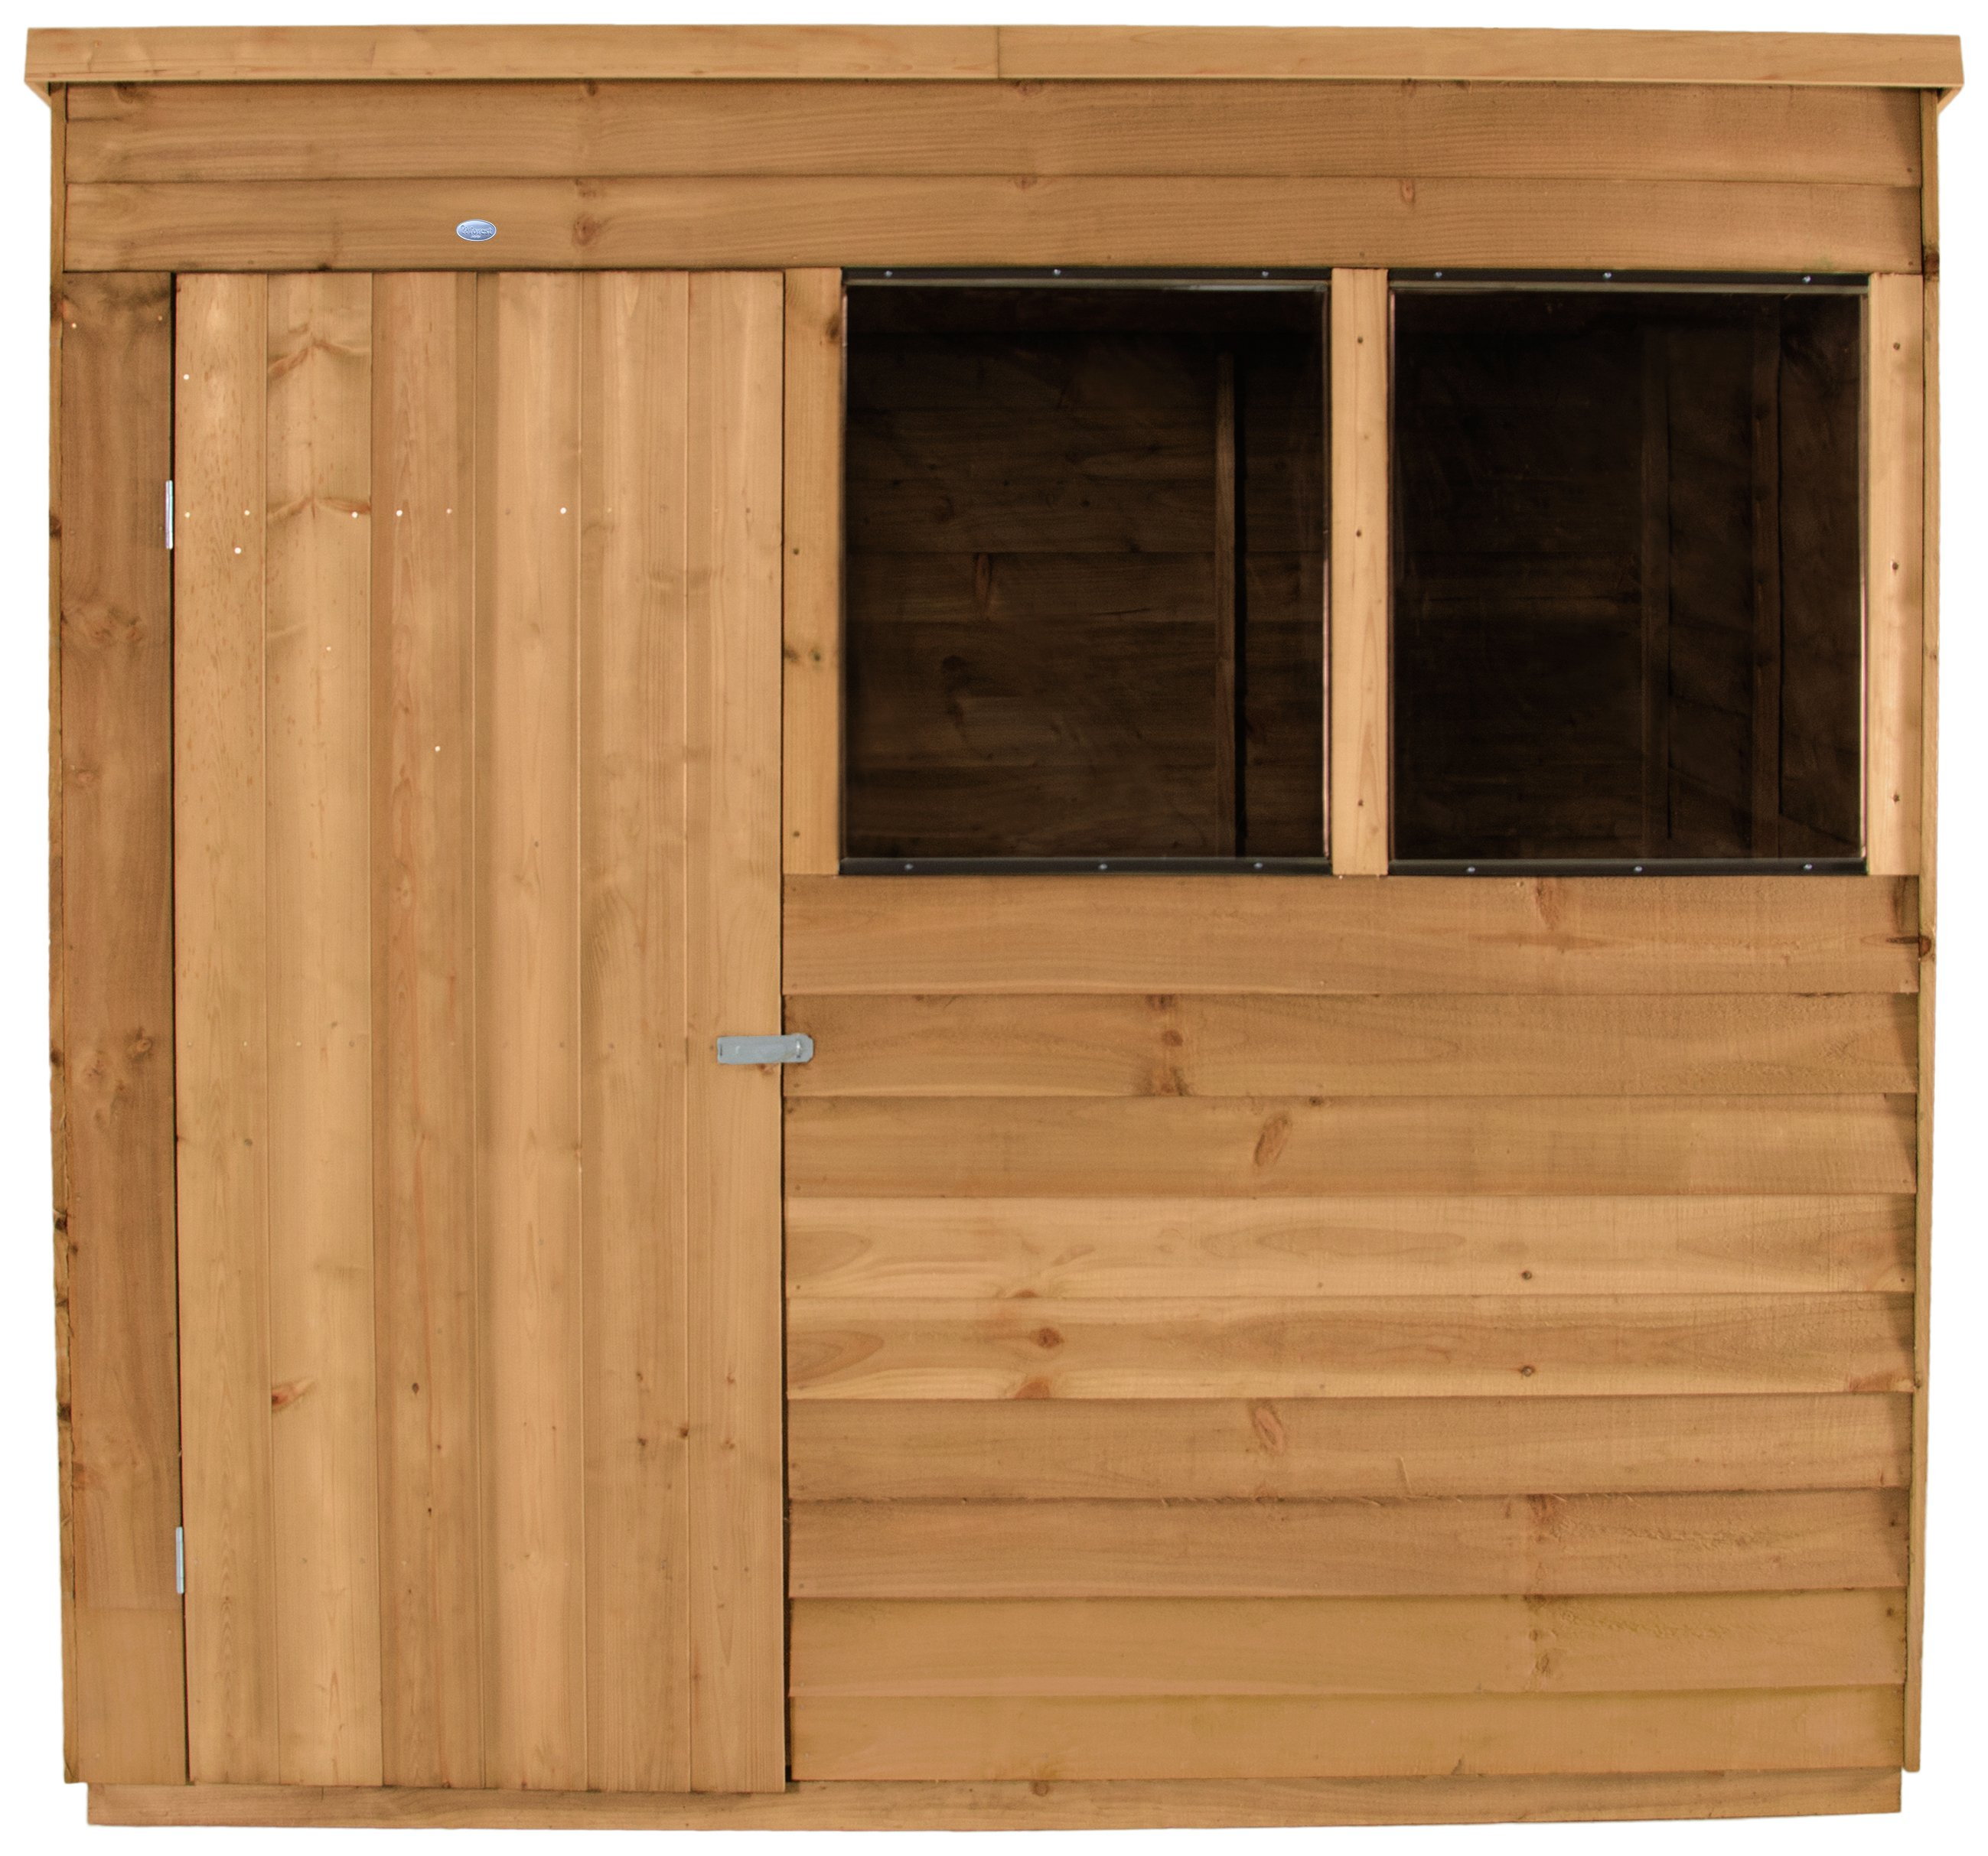 forest-overlap-wooden-shed-with-installation-7-x-5ft